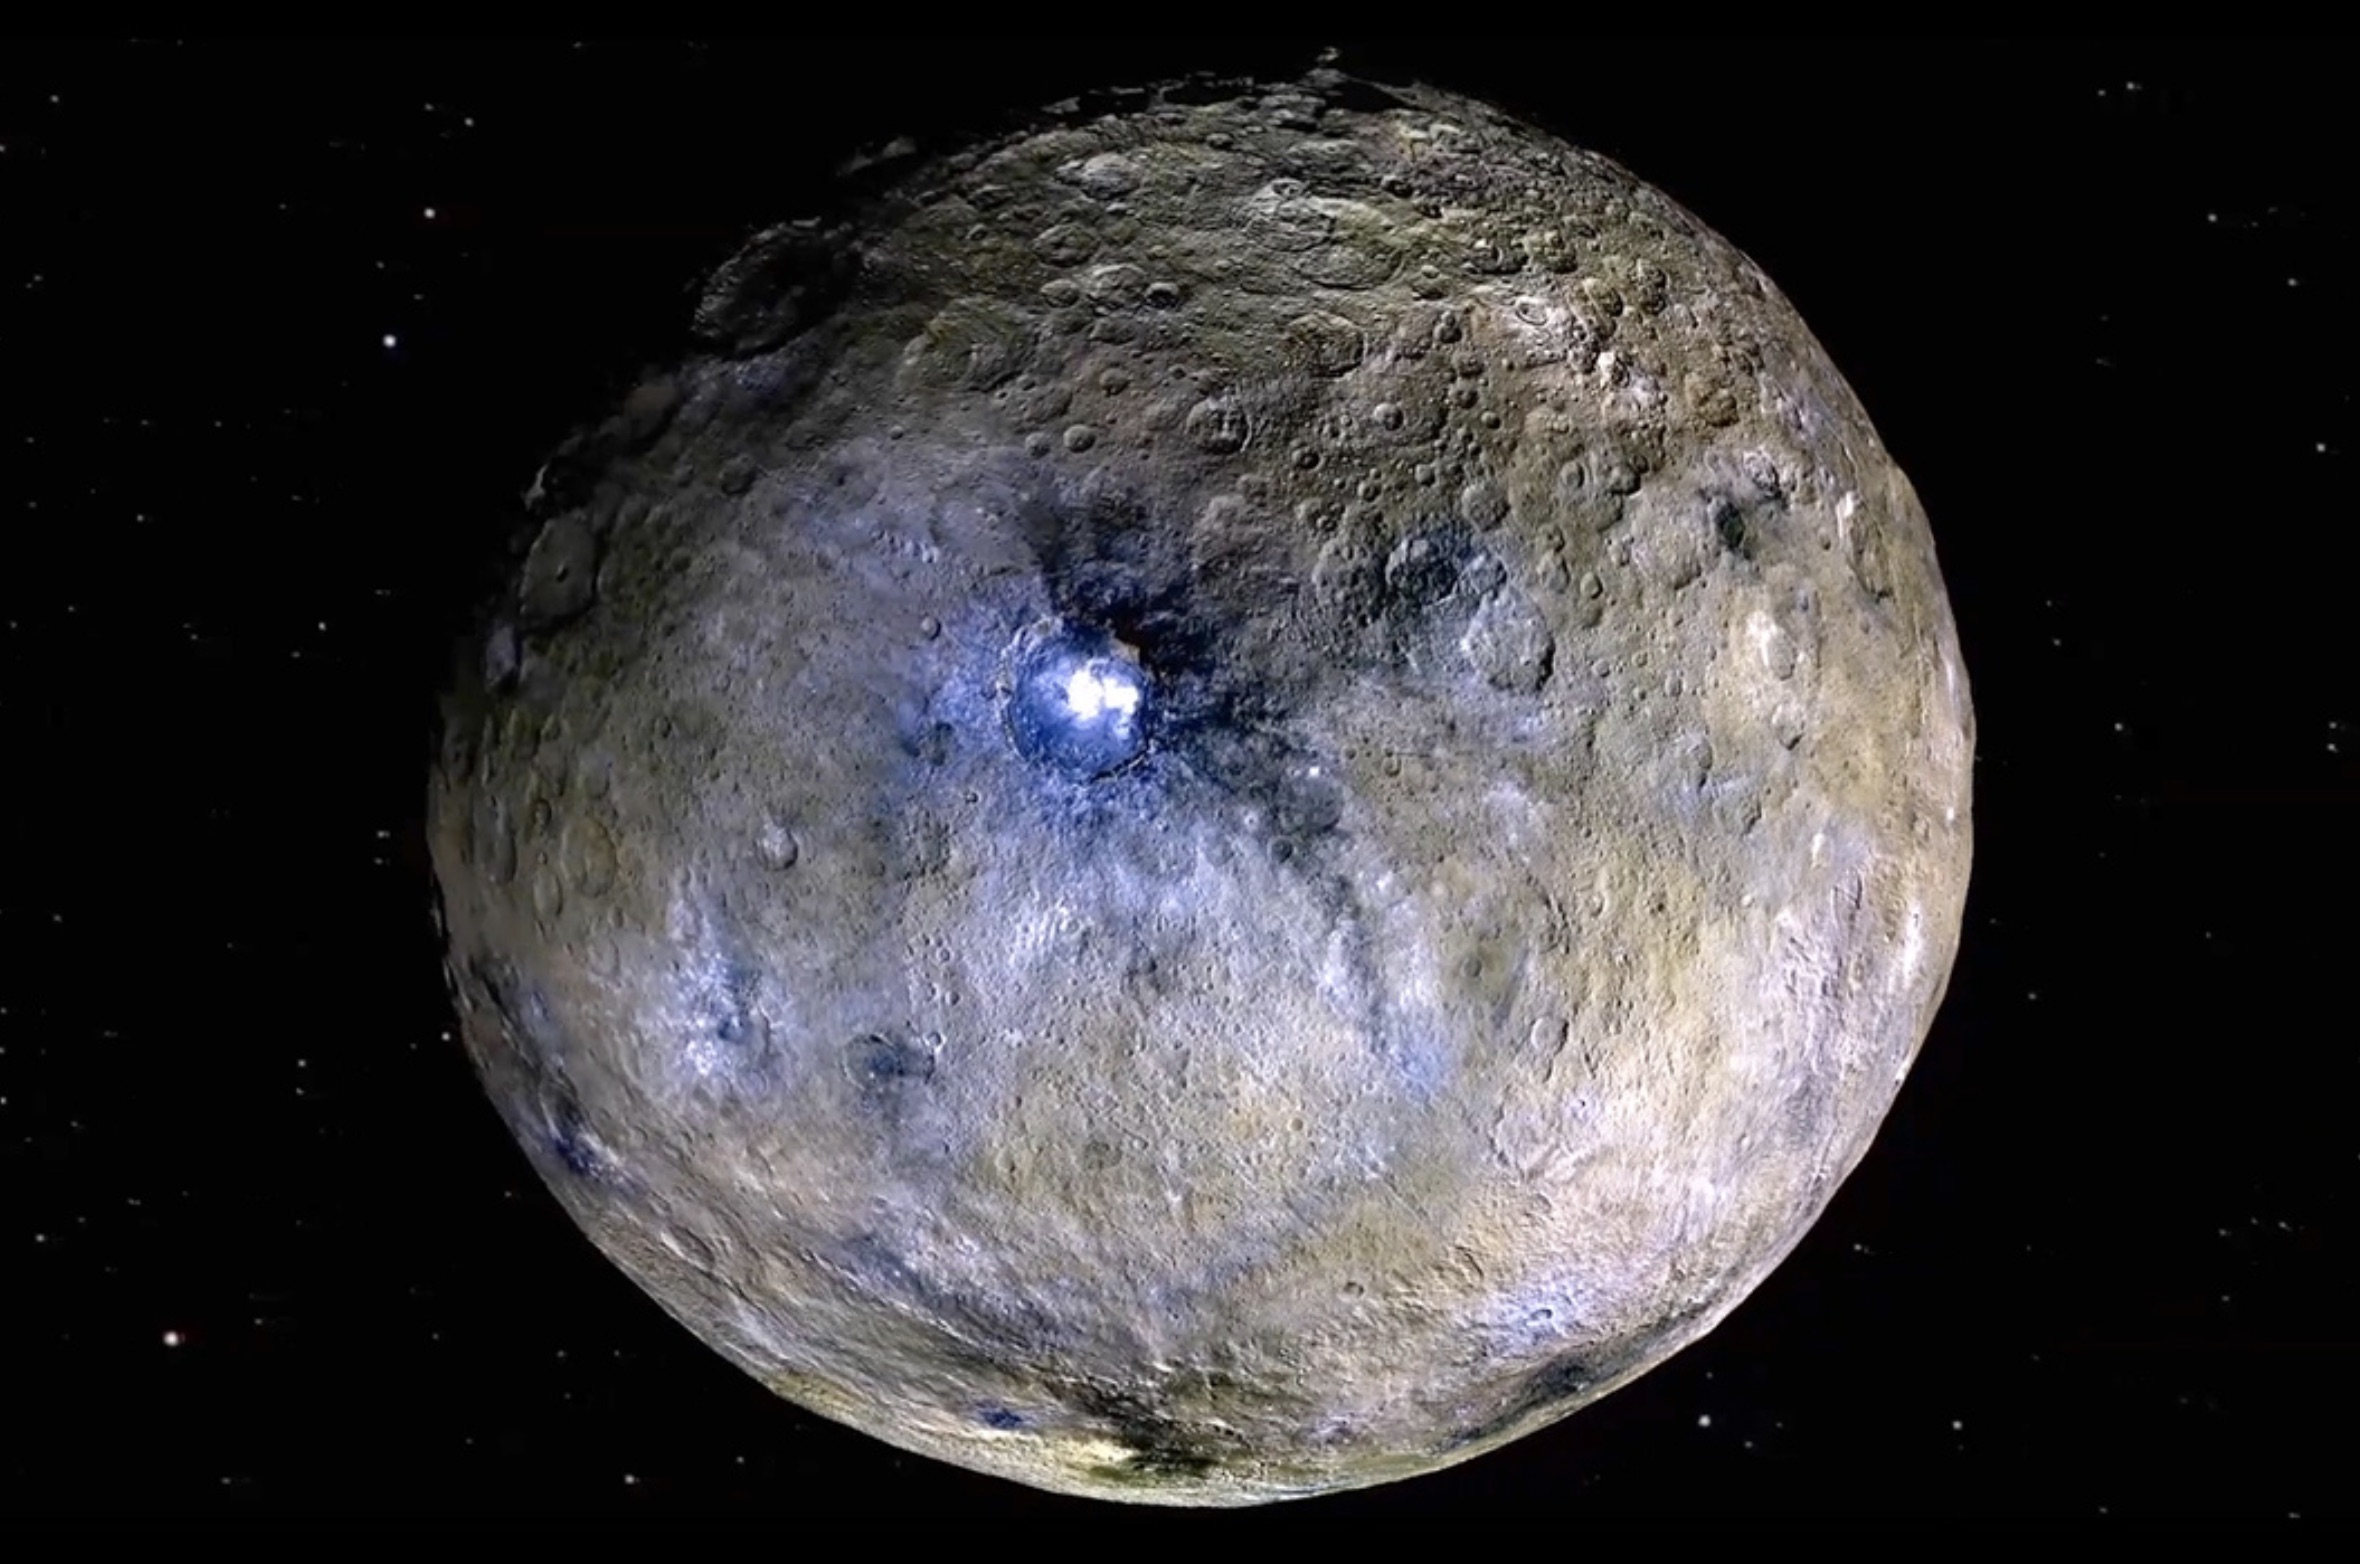 There's another ocean world in our solar system